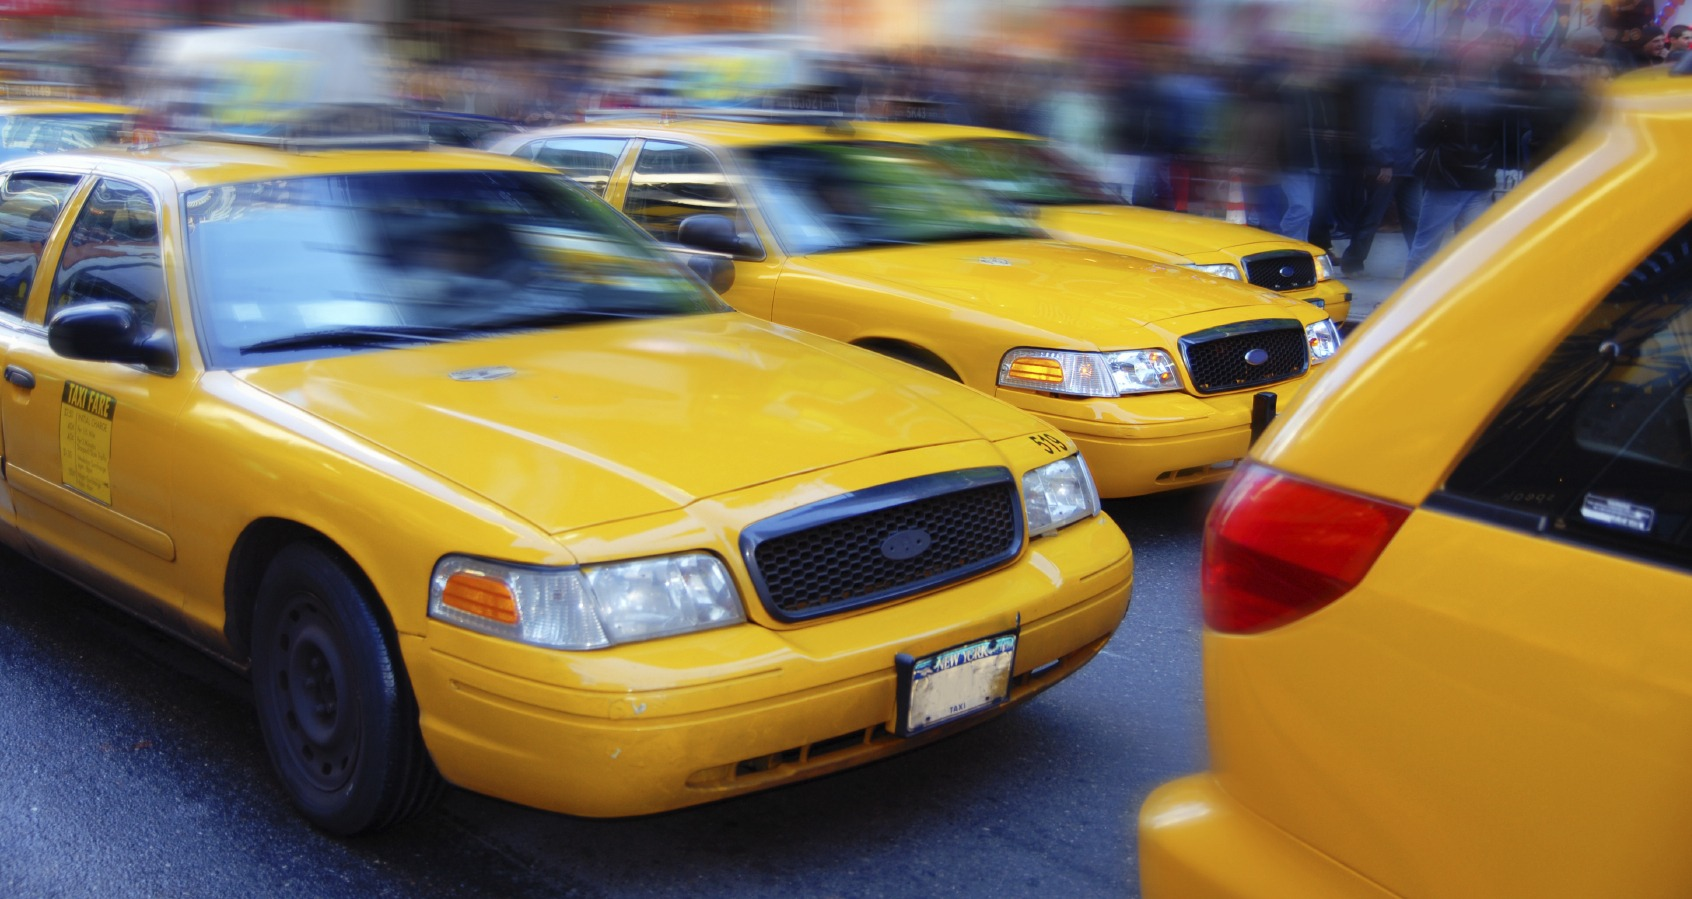 How High Can a Taxi Fare Go?